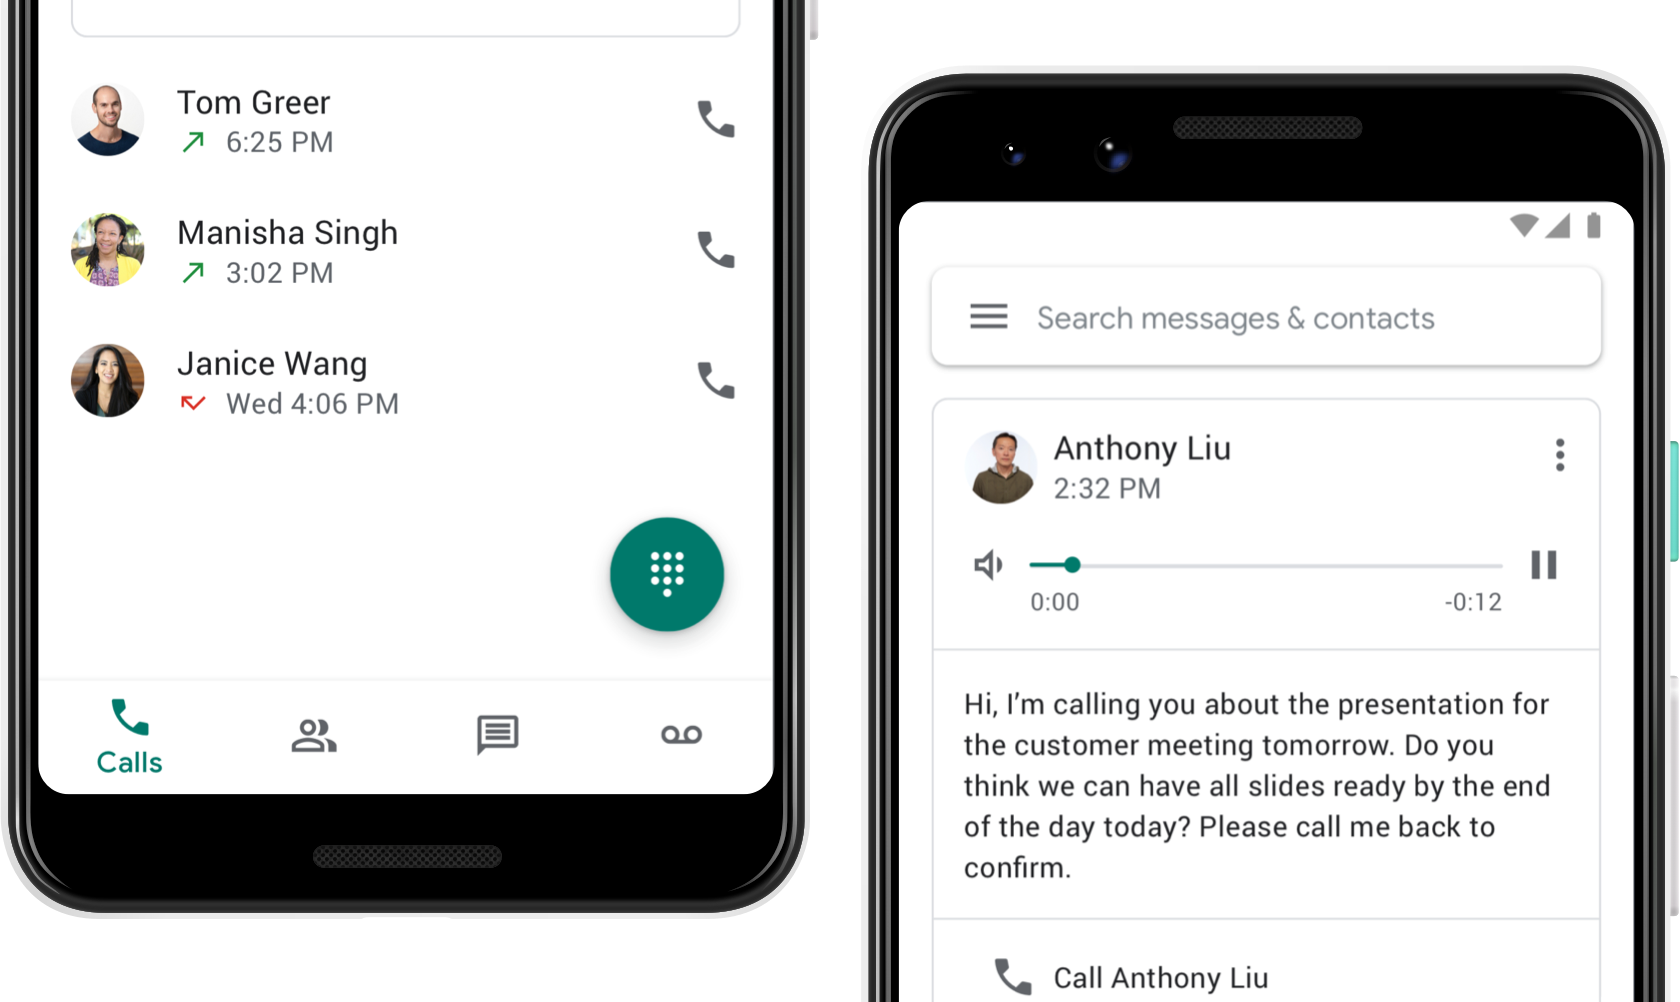 Image showing the Google Voice calling page and the voicemail page.